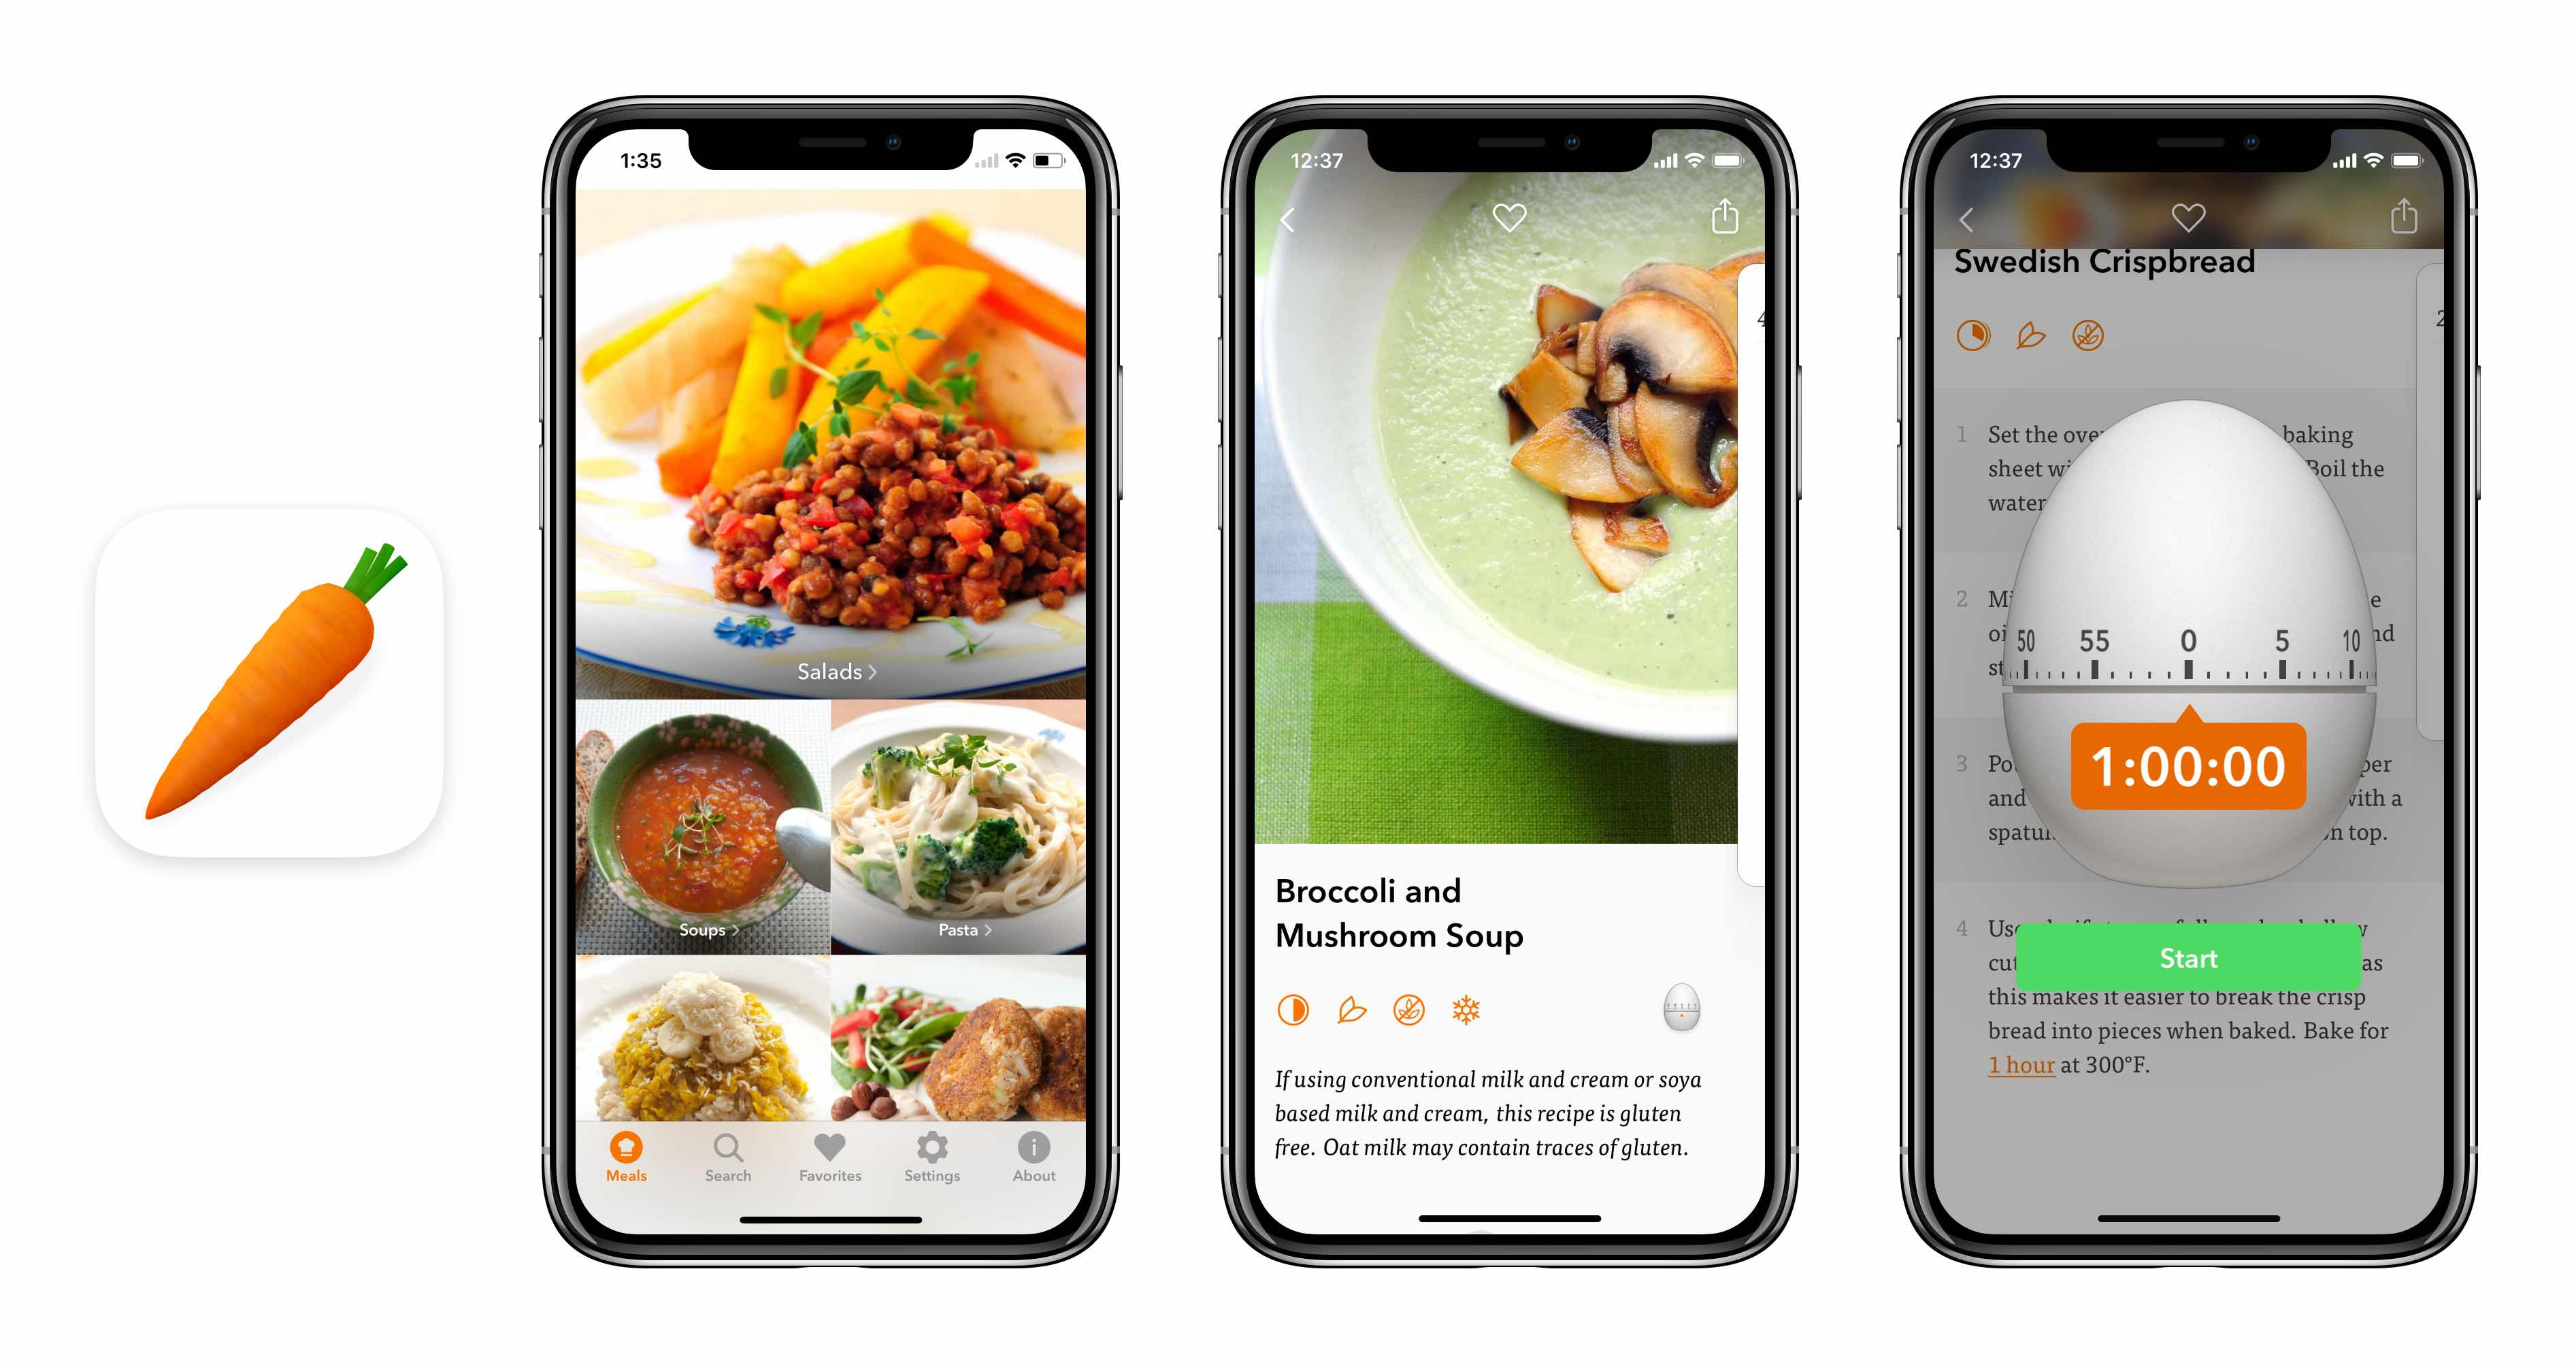 Max rudberg visual user interface designer veggie meals iphone x and ios 11 forumfinder Images